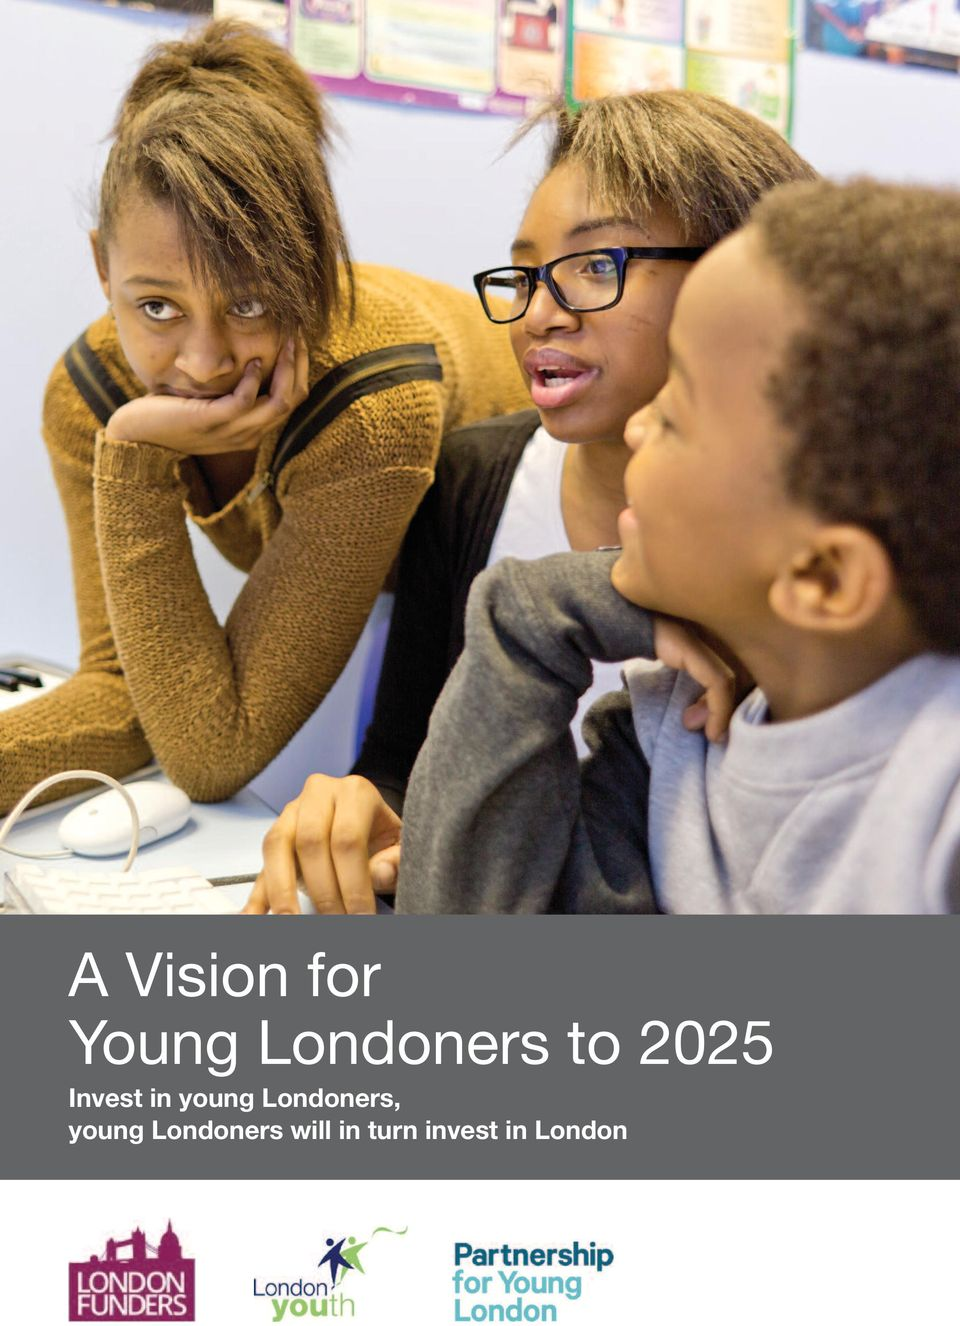 young Londoners, young